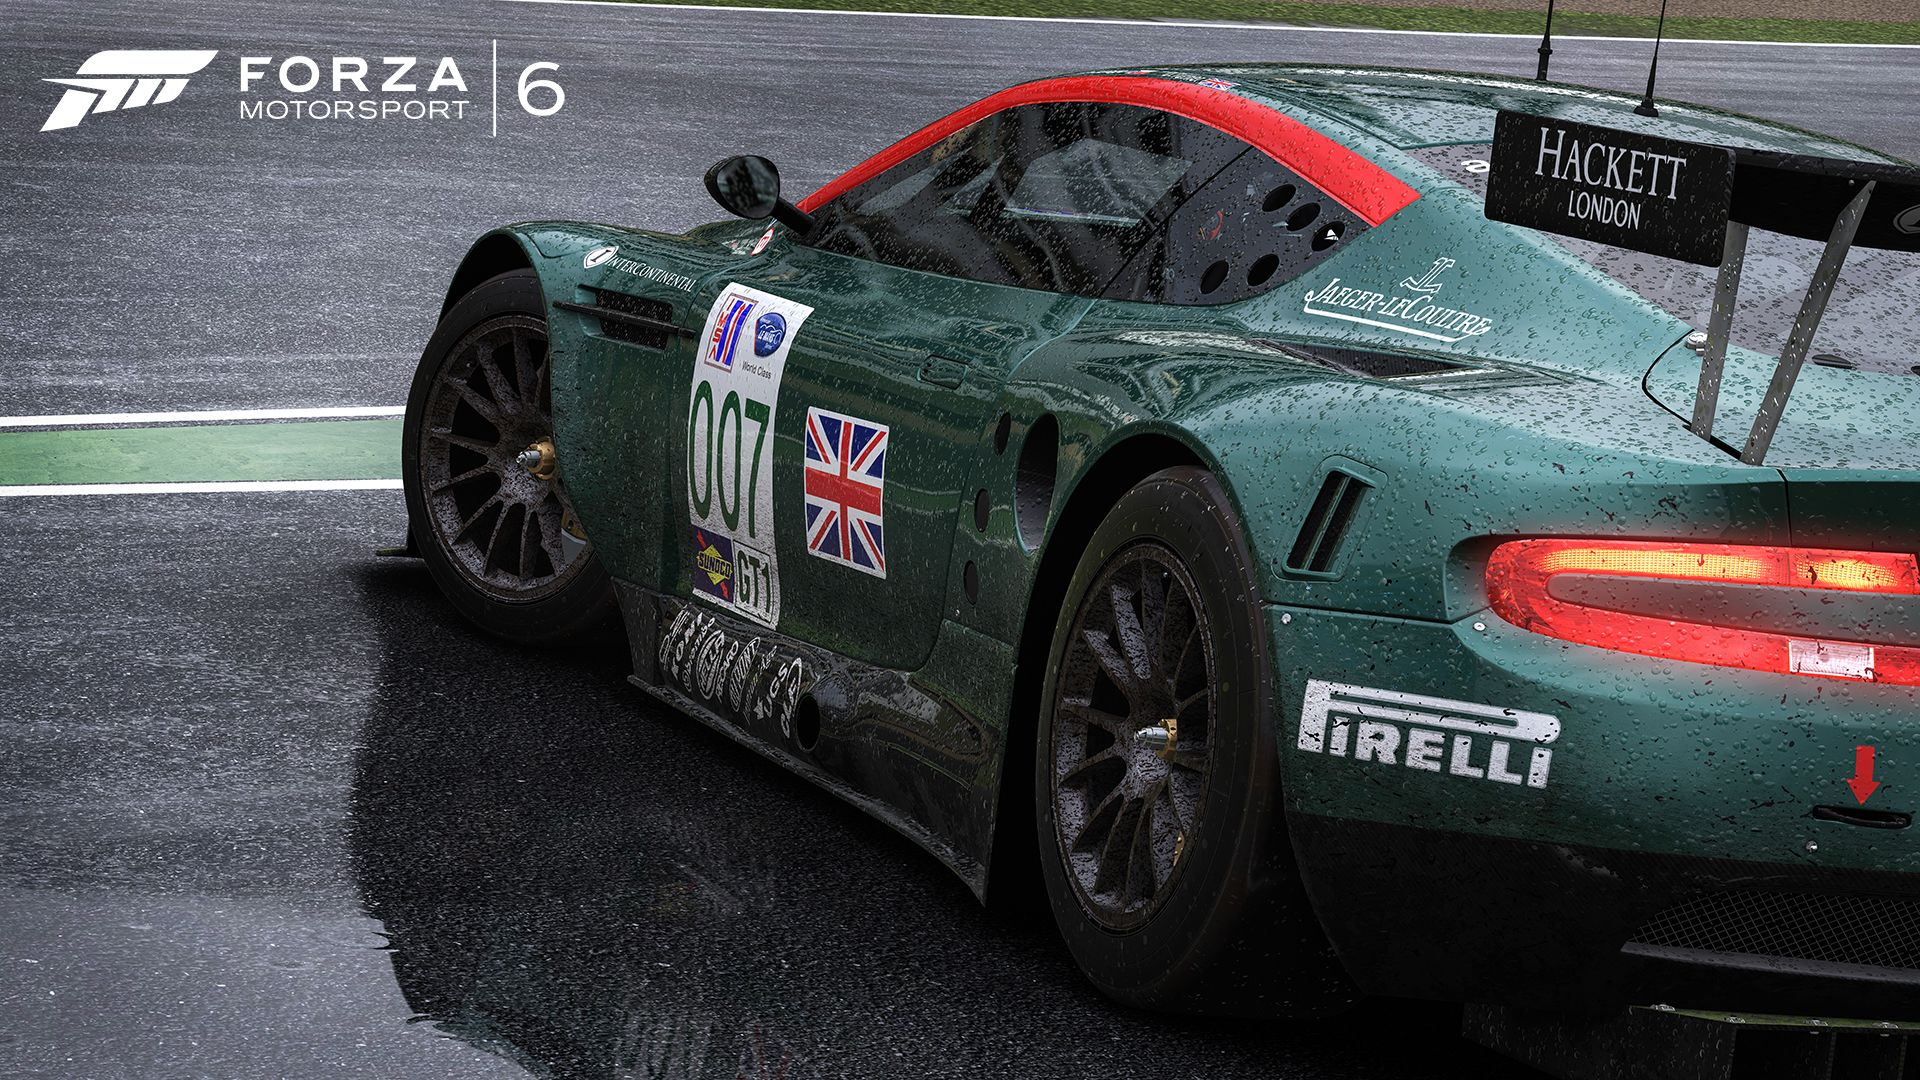 Forza Motorsport 6 Hyper Real Photorealistic Graphics